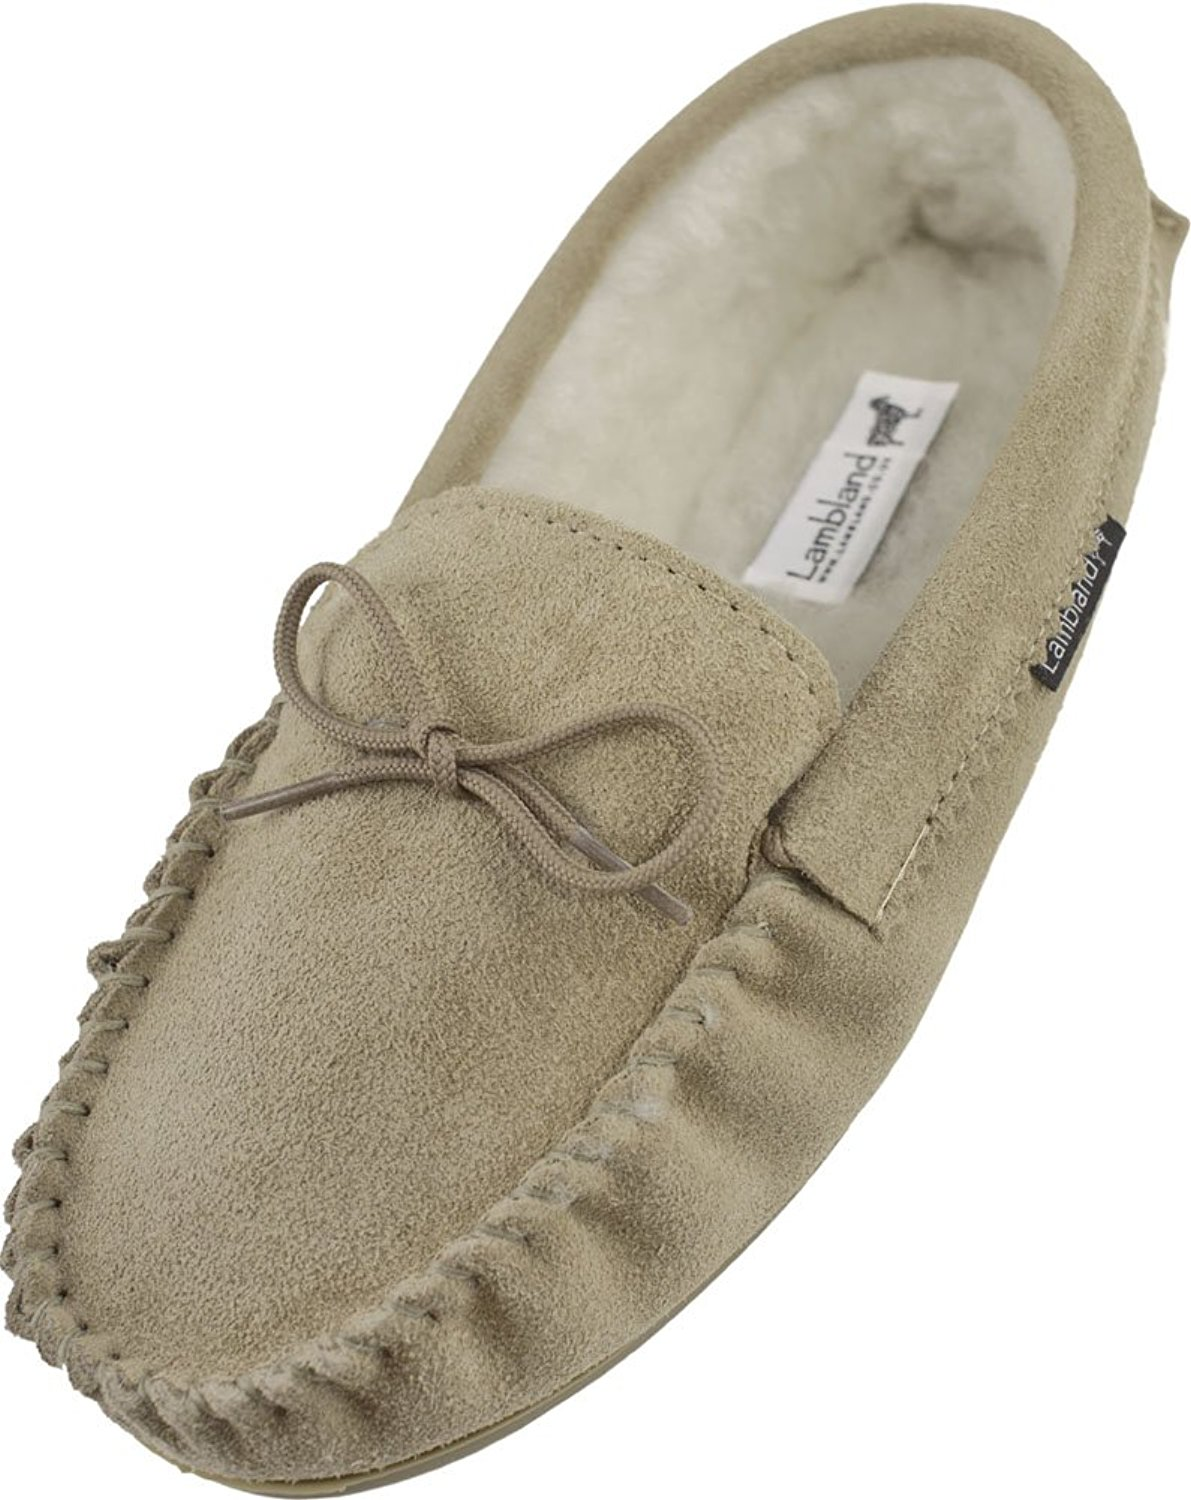 898935d9317 Get Quotations · Lambland Mens Genuine Suede Sheepskin Moccasin Slippers  with Hard Wearing Sole - Navy